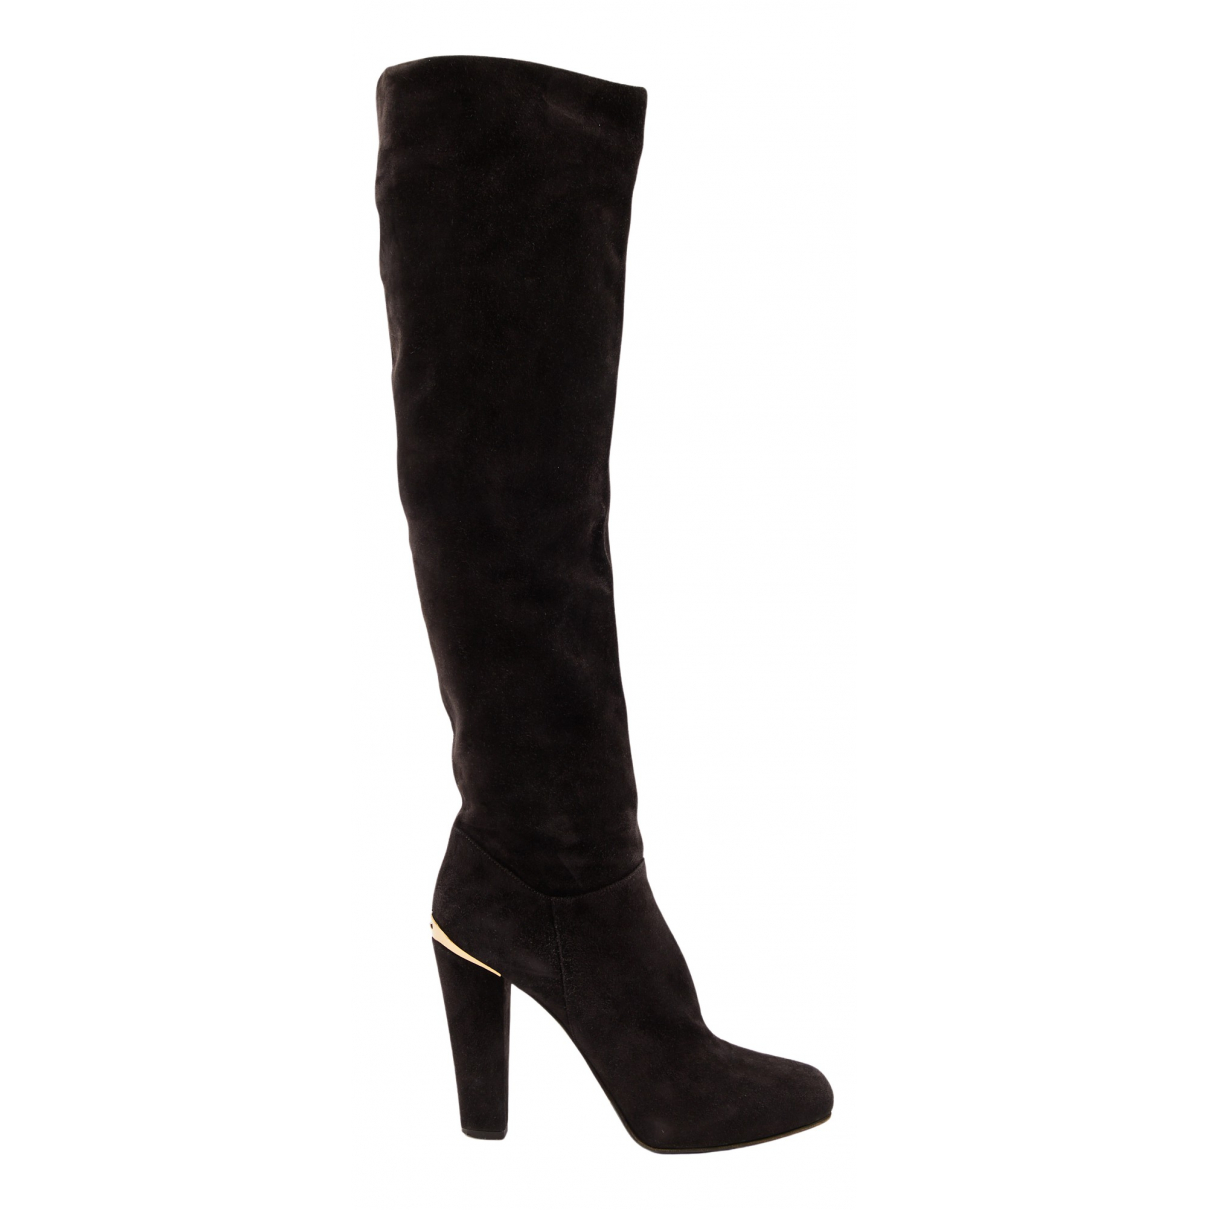 Le Silla N Brown Suede Boots for Women 40 EU